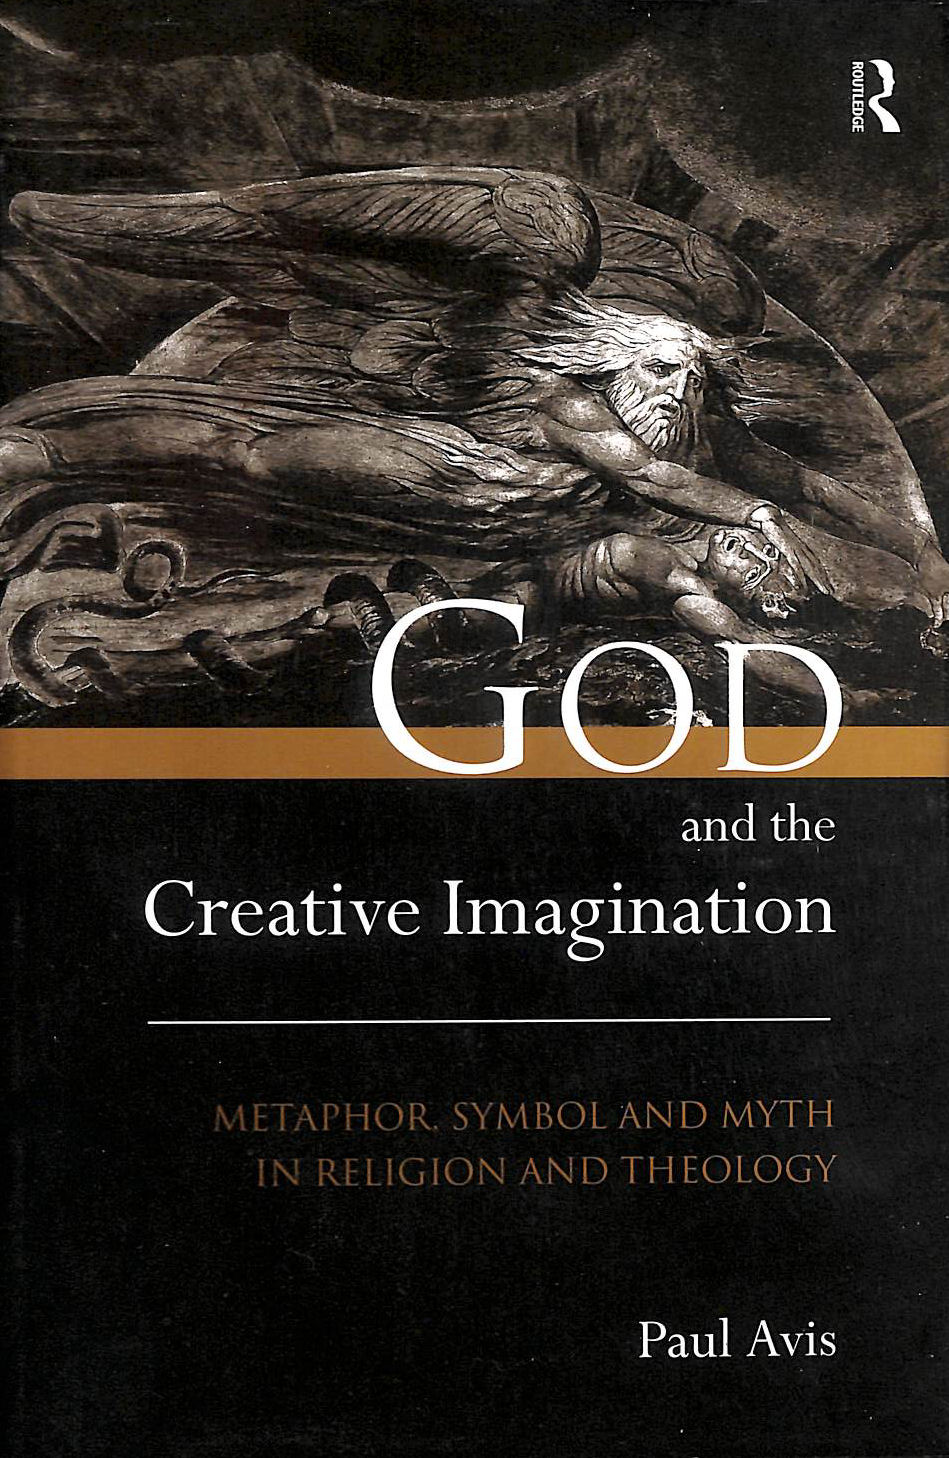 Image for God and the Creative Imagination: Metaphor, Symbol and Myth in Religion and Theology